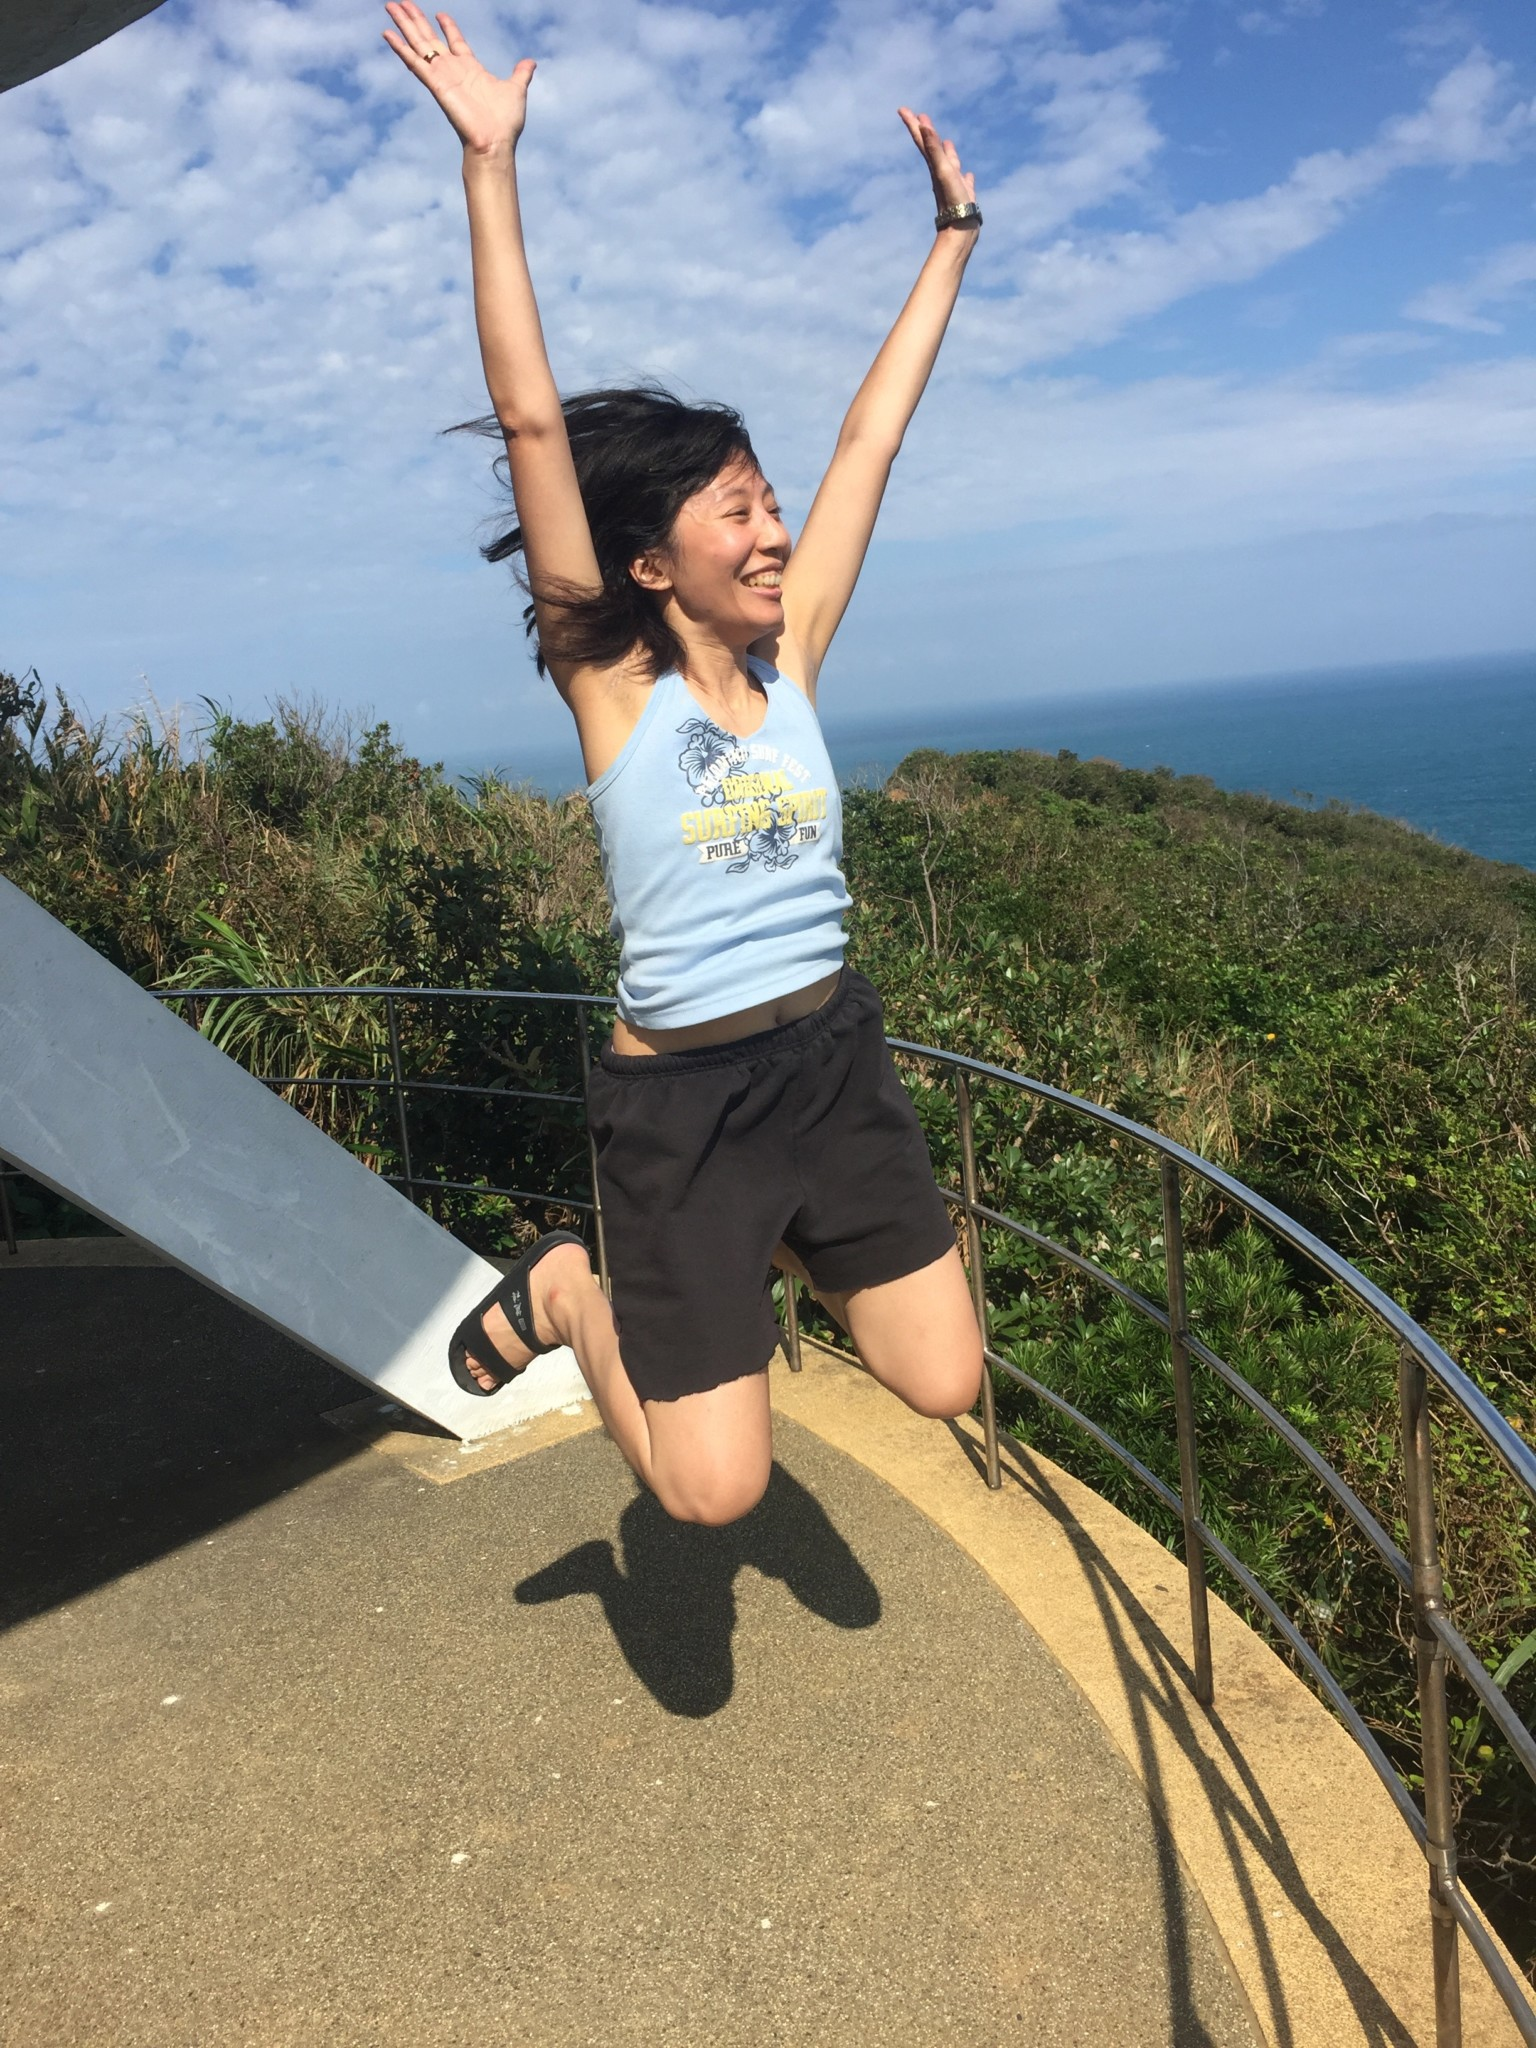 Captions: Author Dr  Melissa Yuan-Innes jumps for joy in Taiwan